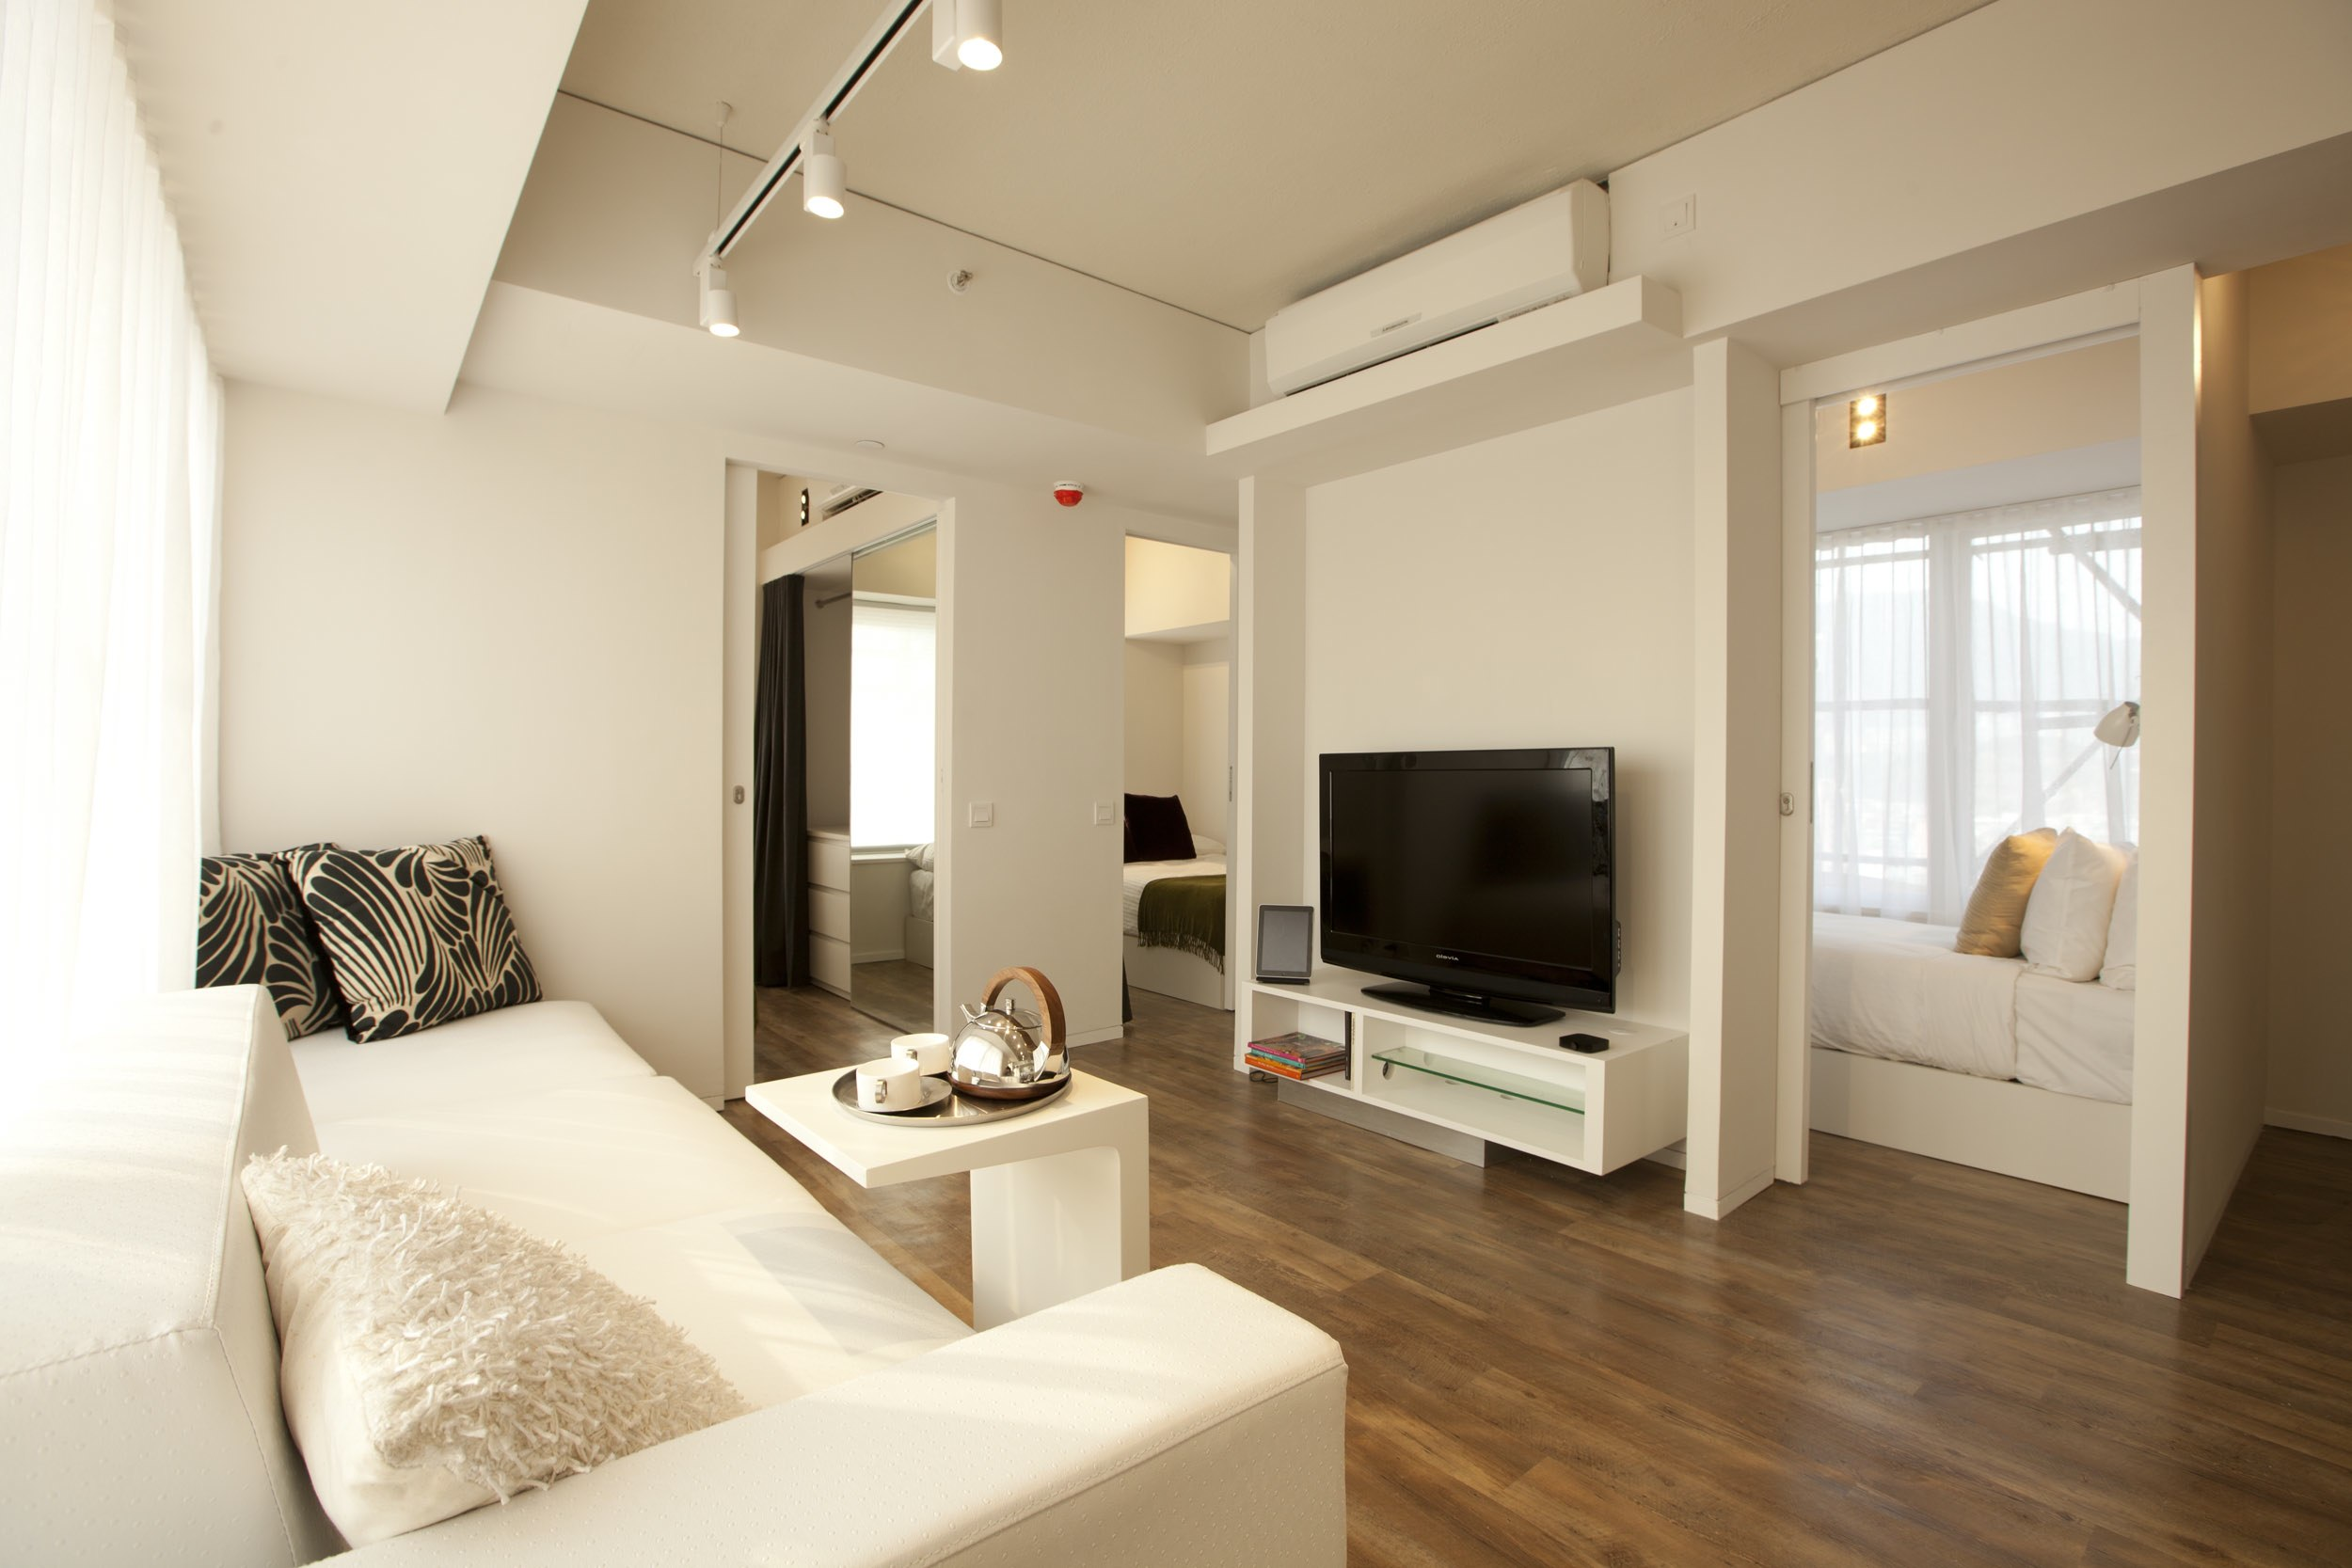 Hongkong Serviced Apartments Find Your Preferred Apartment In Hk Here